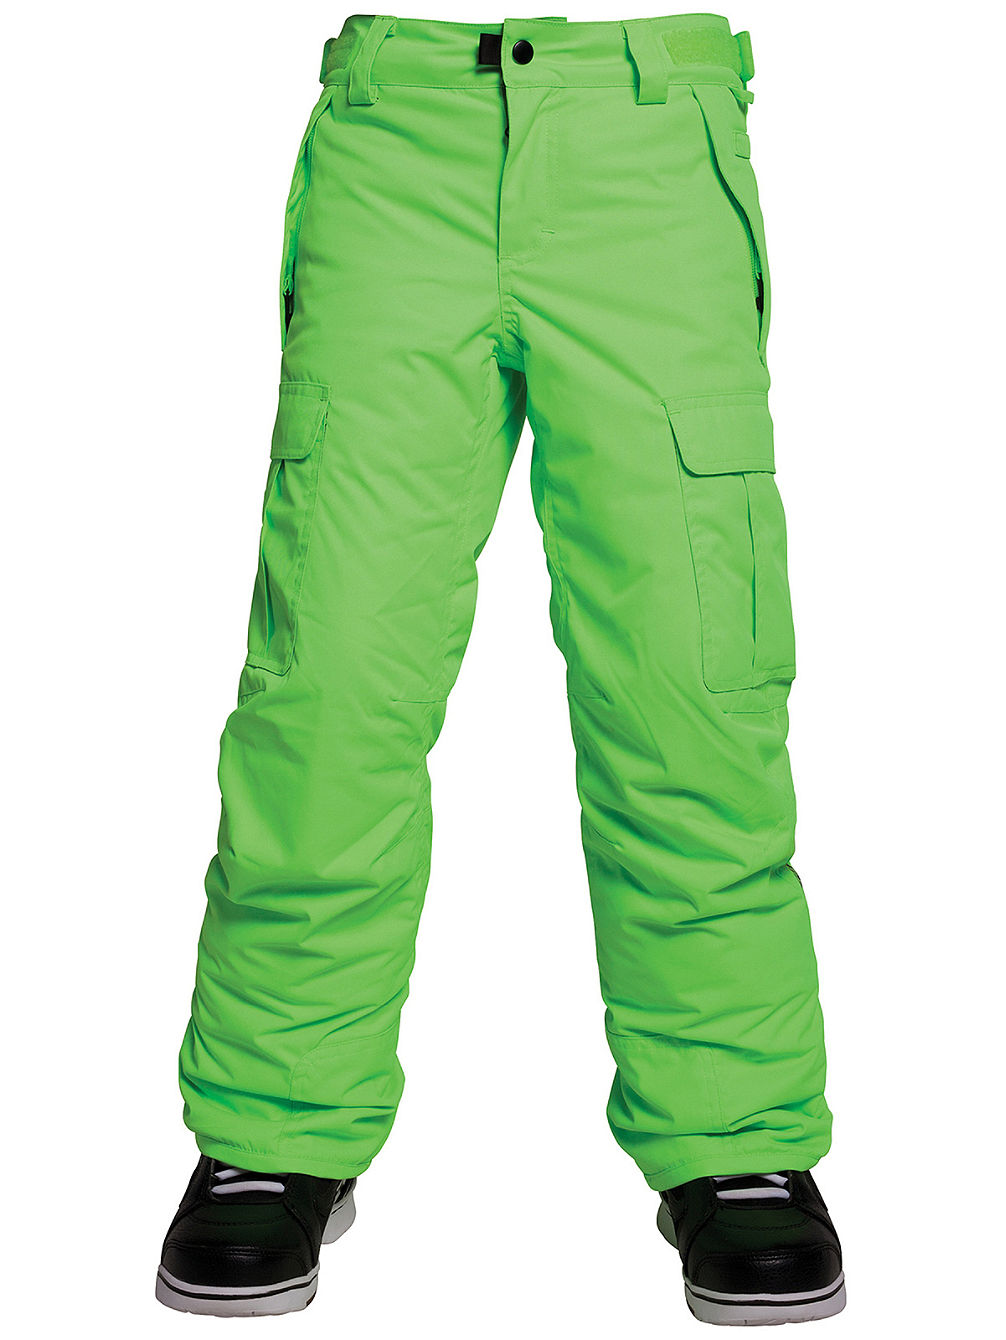 60b45a103 Buy 686 All Terrain Insulated Pants Boys online at blue-tomato.com